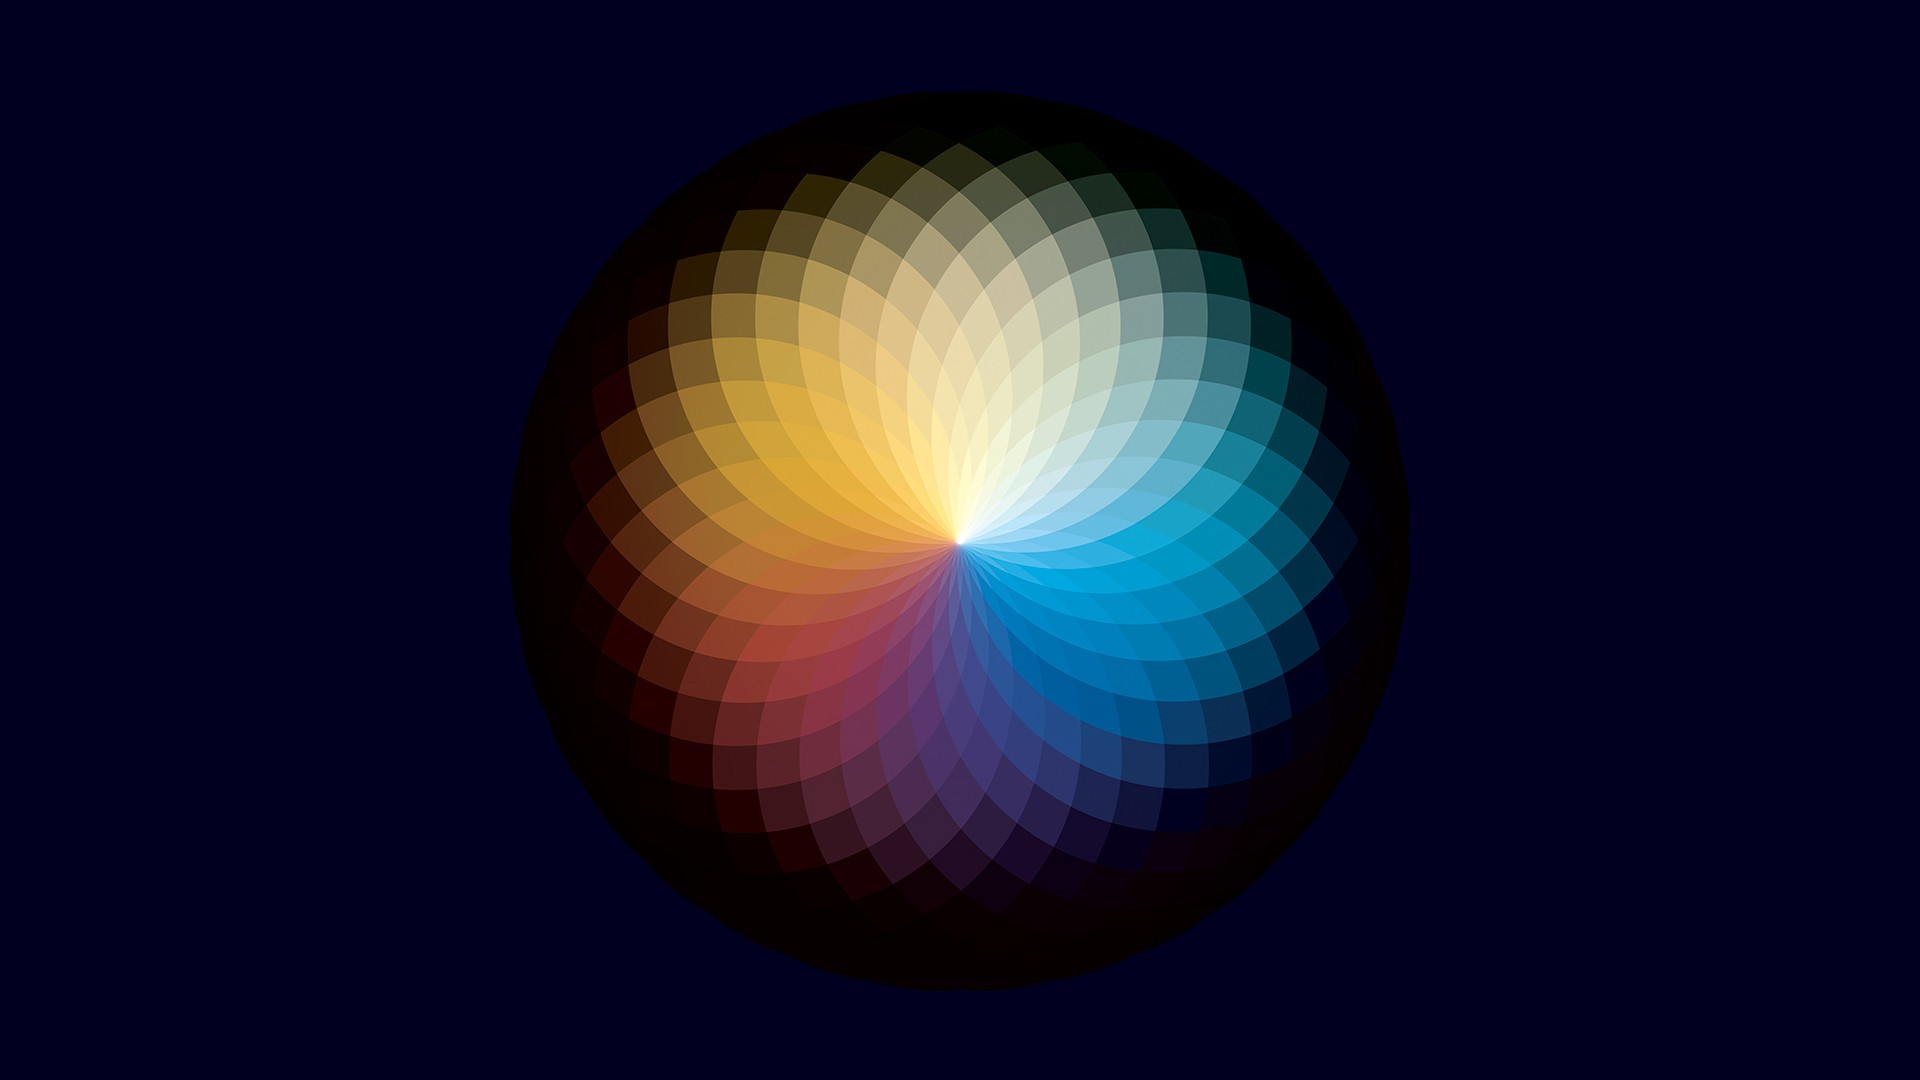 Cute Geometric Wallpaper Color Wheel Hd Abstract 4k Wallpapers Images